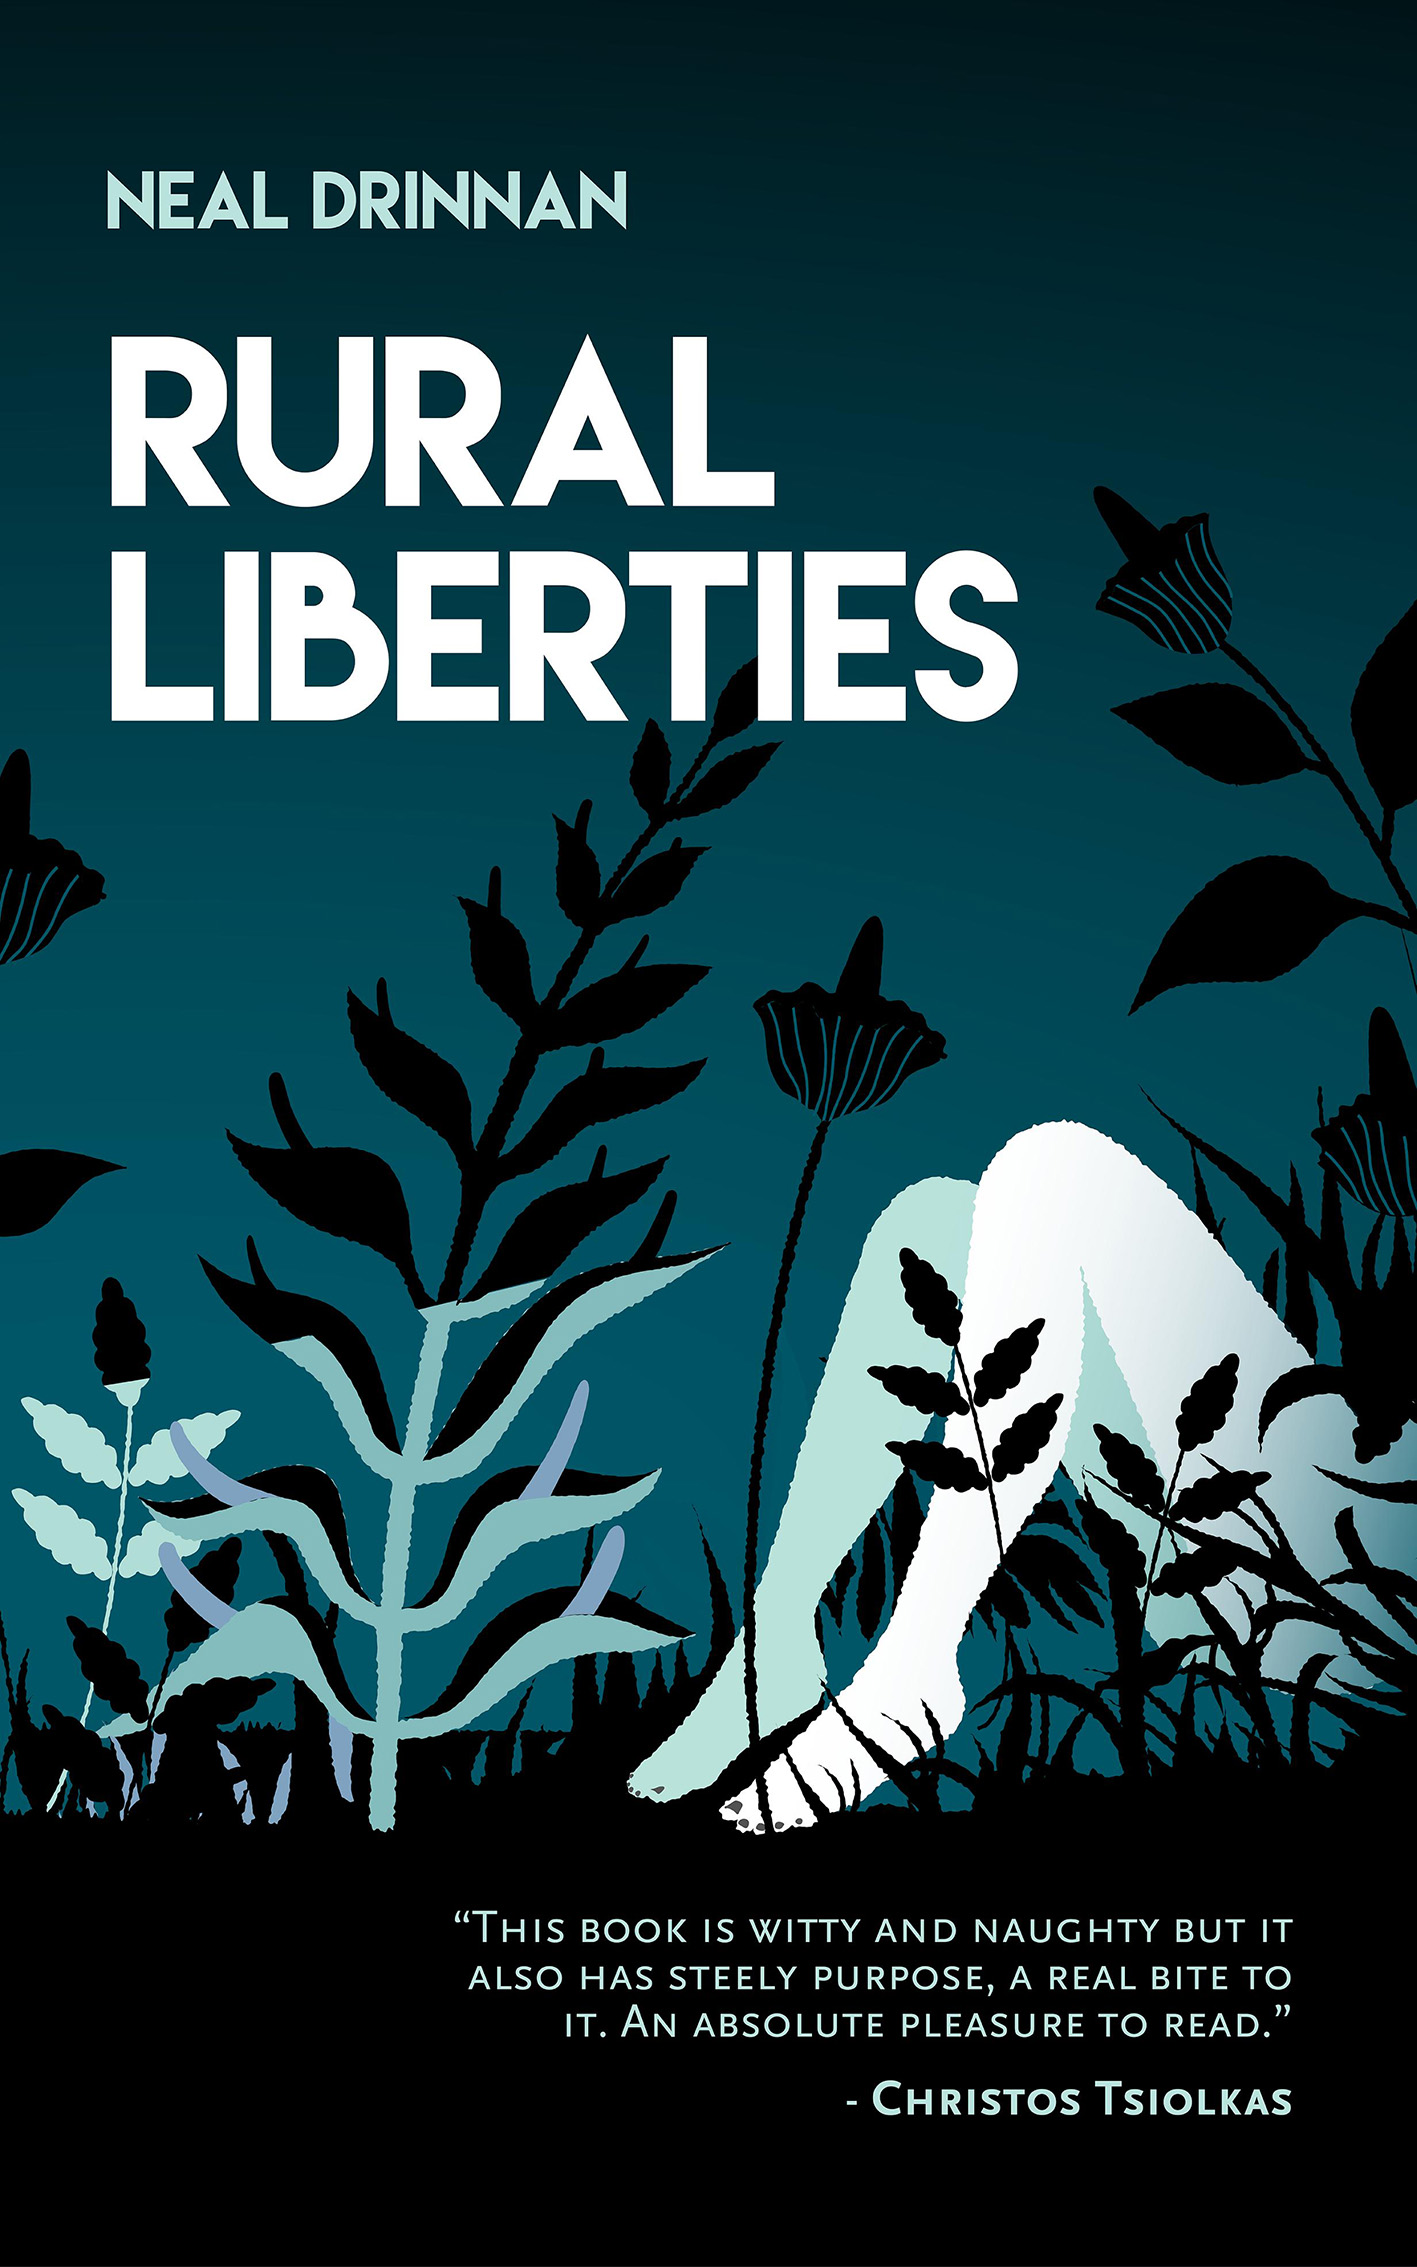 Rural Liberties by Neal Drinnan